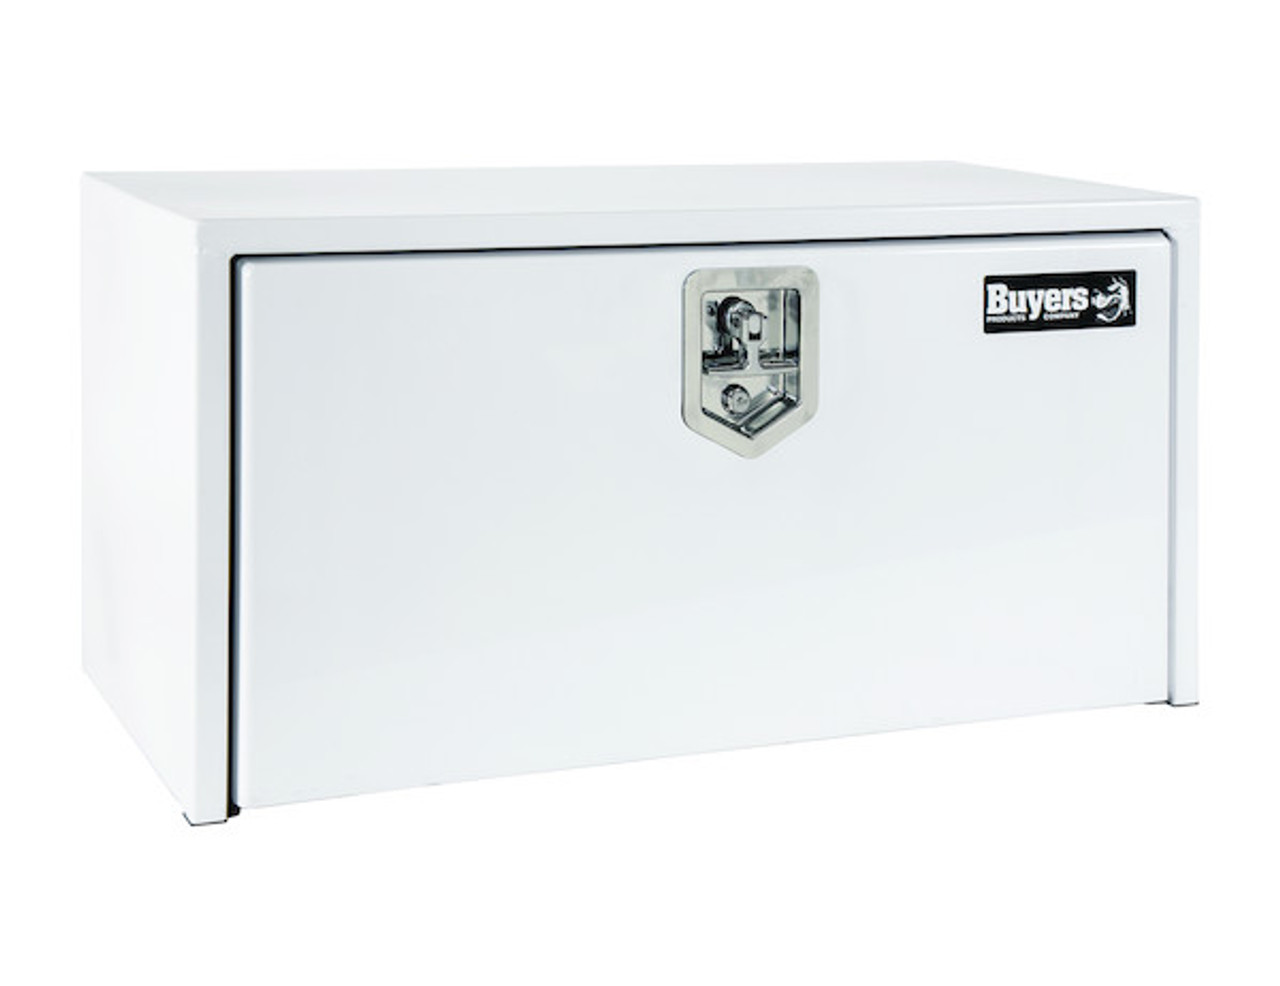 1703405 BUYERS PRODUCTS WHITE STEEL UNDERBODY TRUCK BOX TOOLBOX